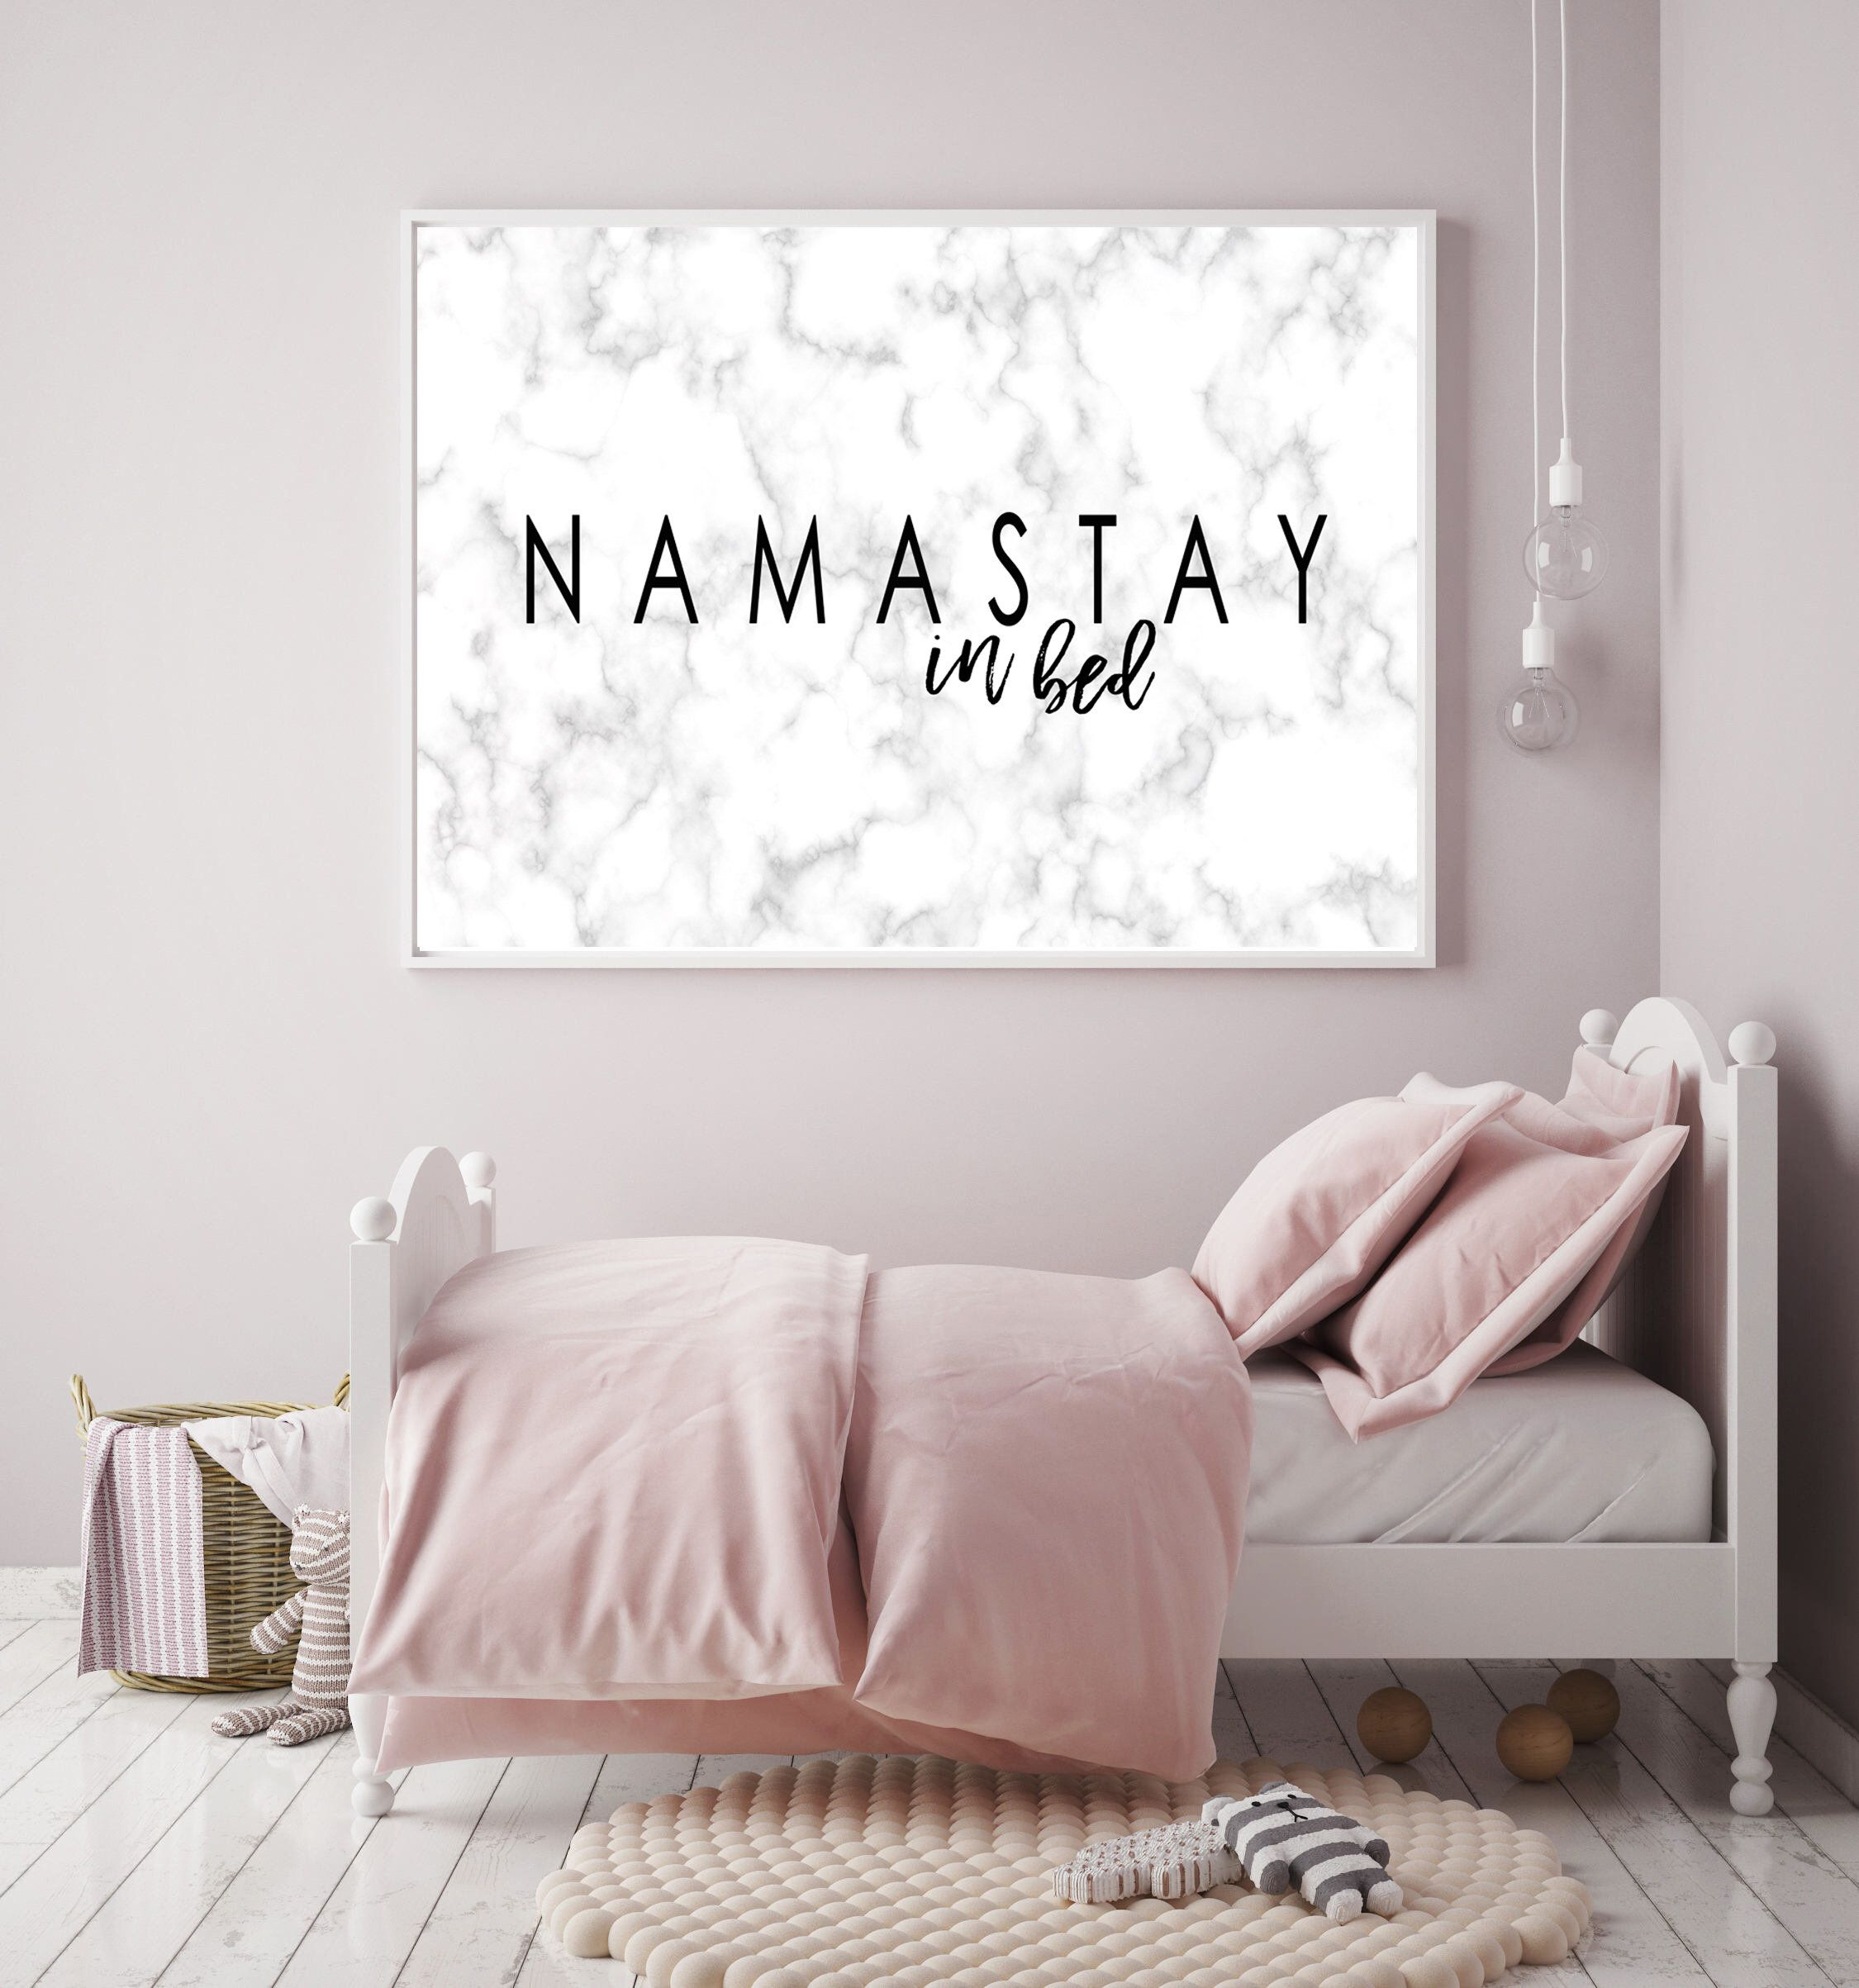 Namastay In Bed Print Namaste Marble Print Bedroom Decor Etsy Bedroom Decor Yoga Decor Bedroom Wall